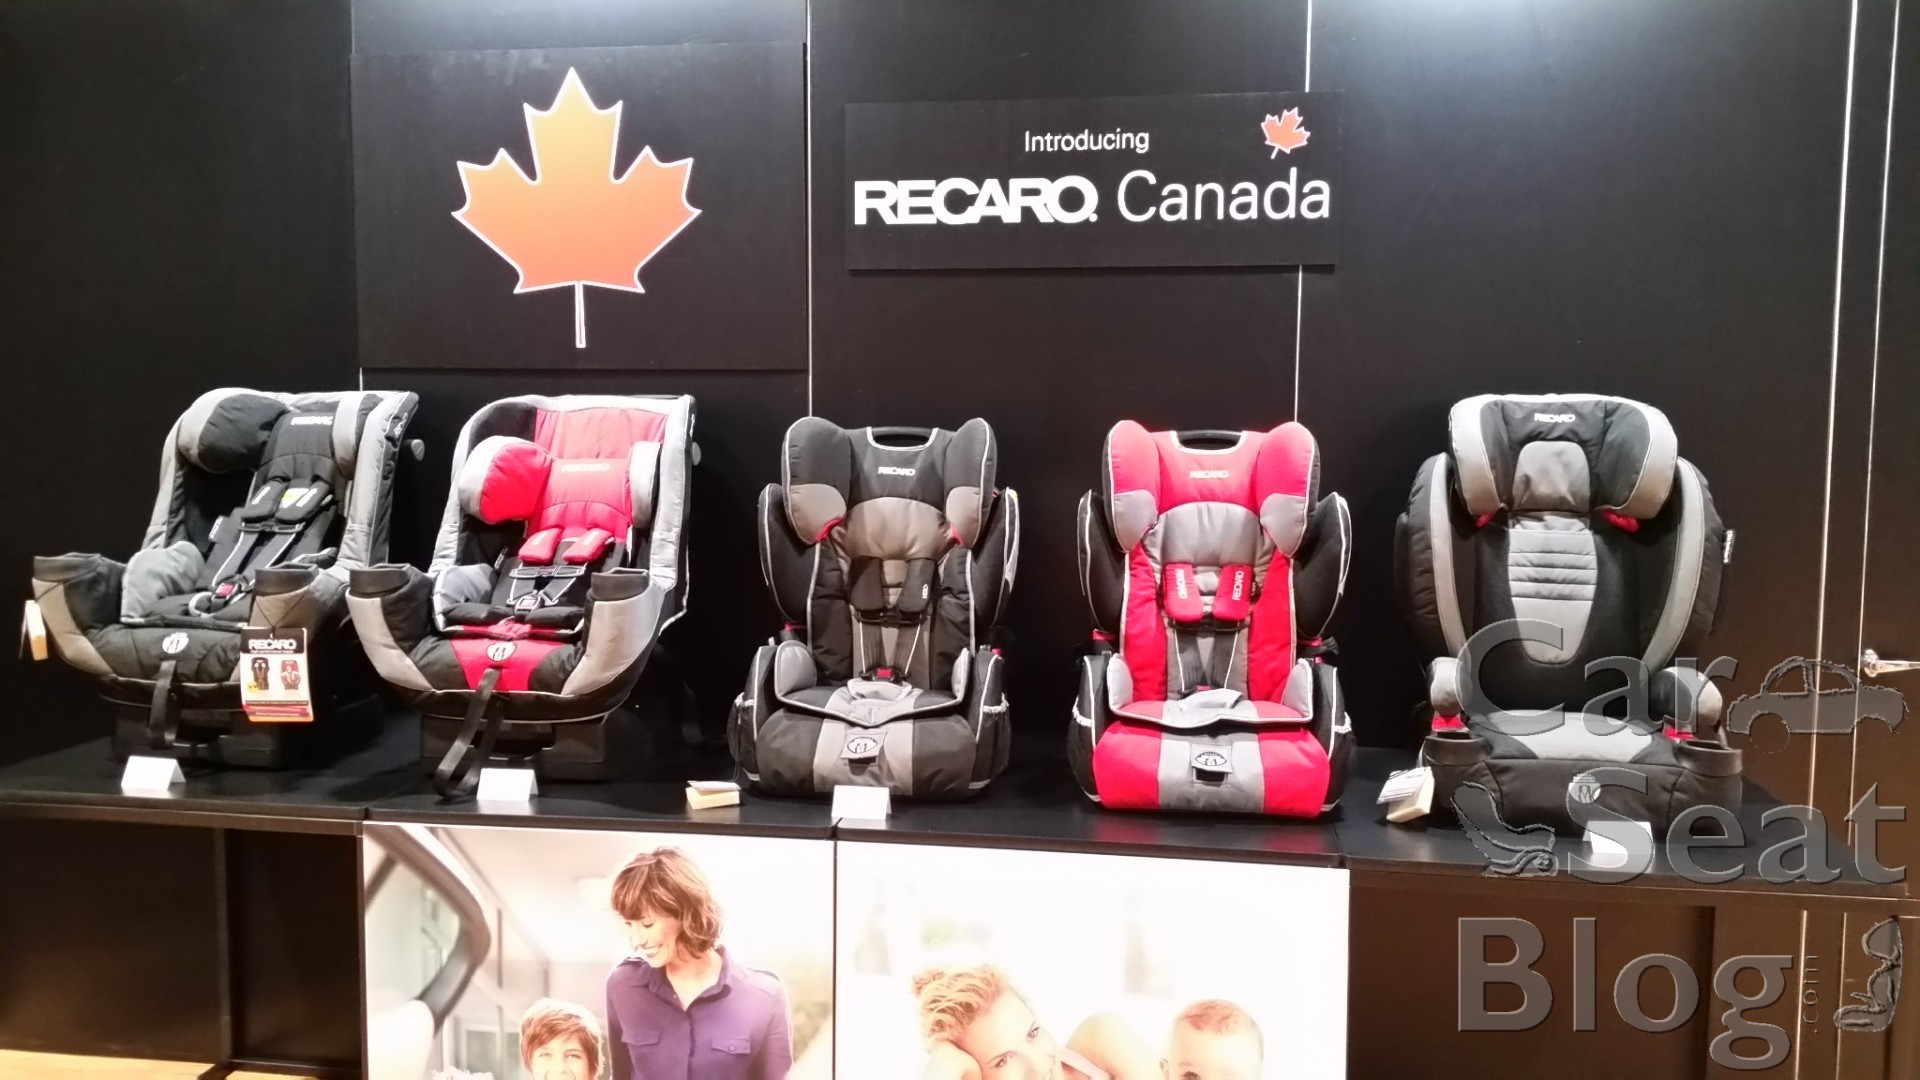 Finally hereu0027s a look at the remarkably ingenious and easy-to-install recall fix for the Recaro Performance RIDE and ProRIDE convertible carseats & CarseatBlog: The Most Trusted Source for Car Seat Reviews Ratings ...